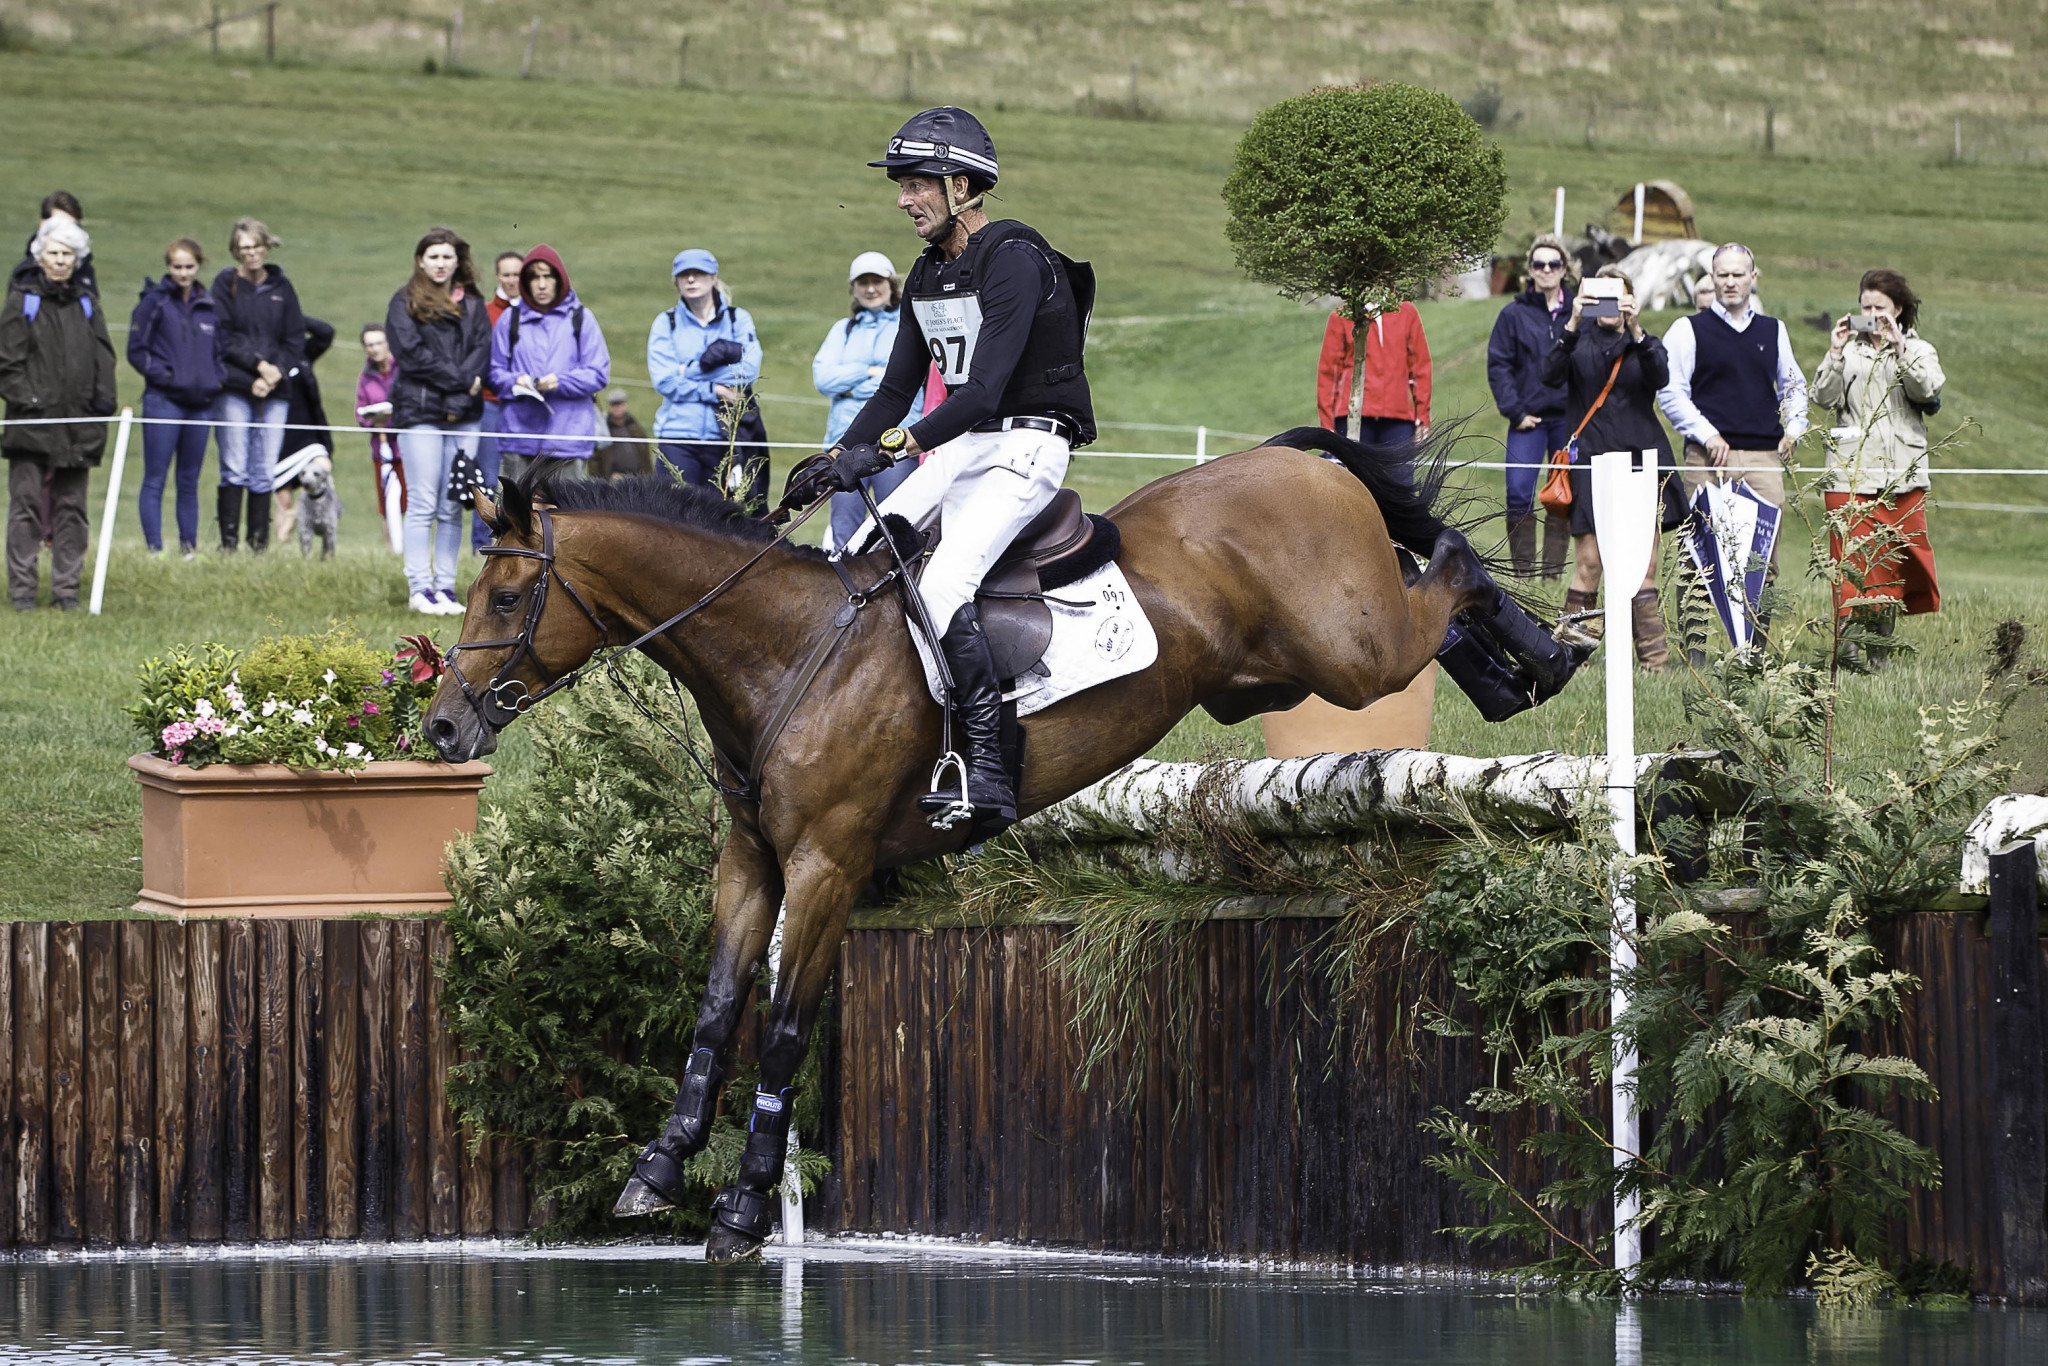 New Zealand move into lead after cross country at FEI Eventing Nations Cup in Cappoquin